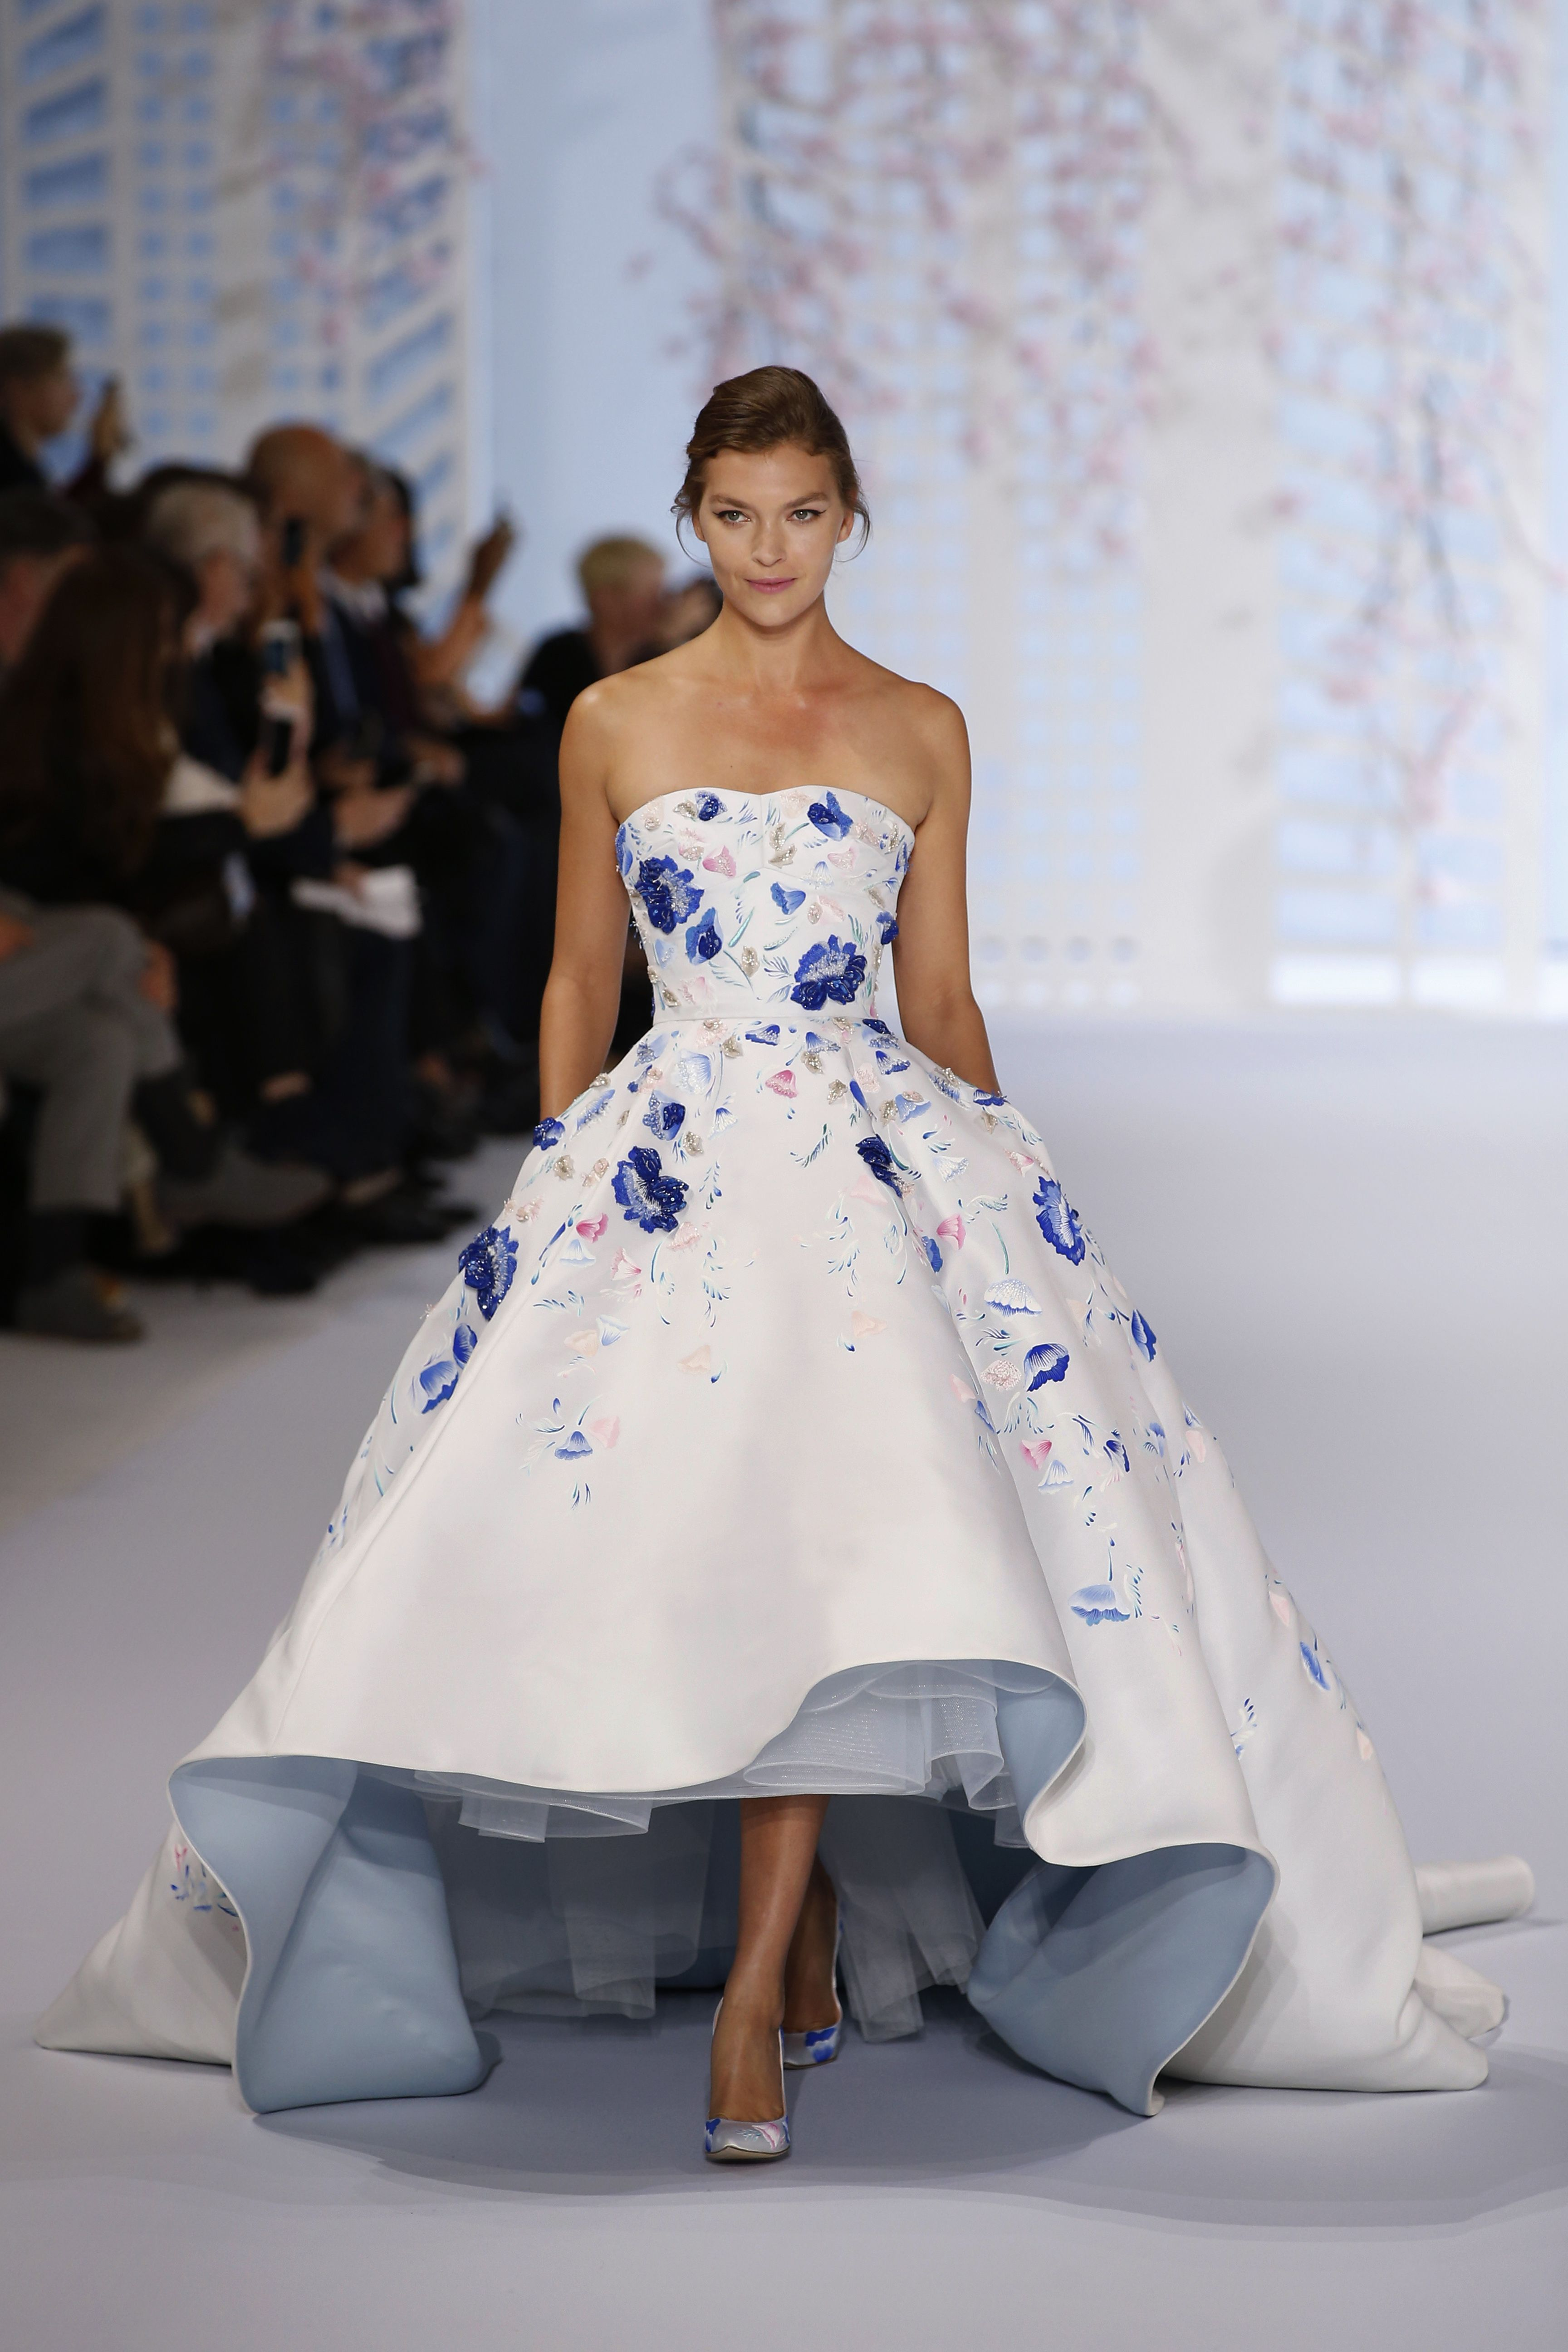 The Best Gowns From Paris Couture Week | J\'adore couture | Pinterest ...